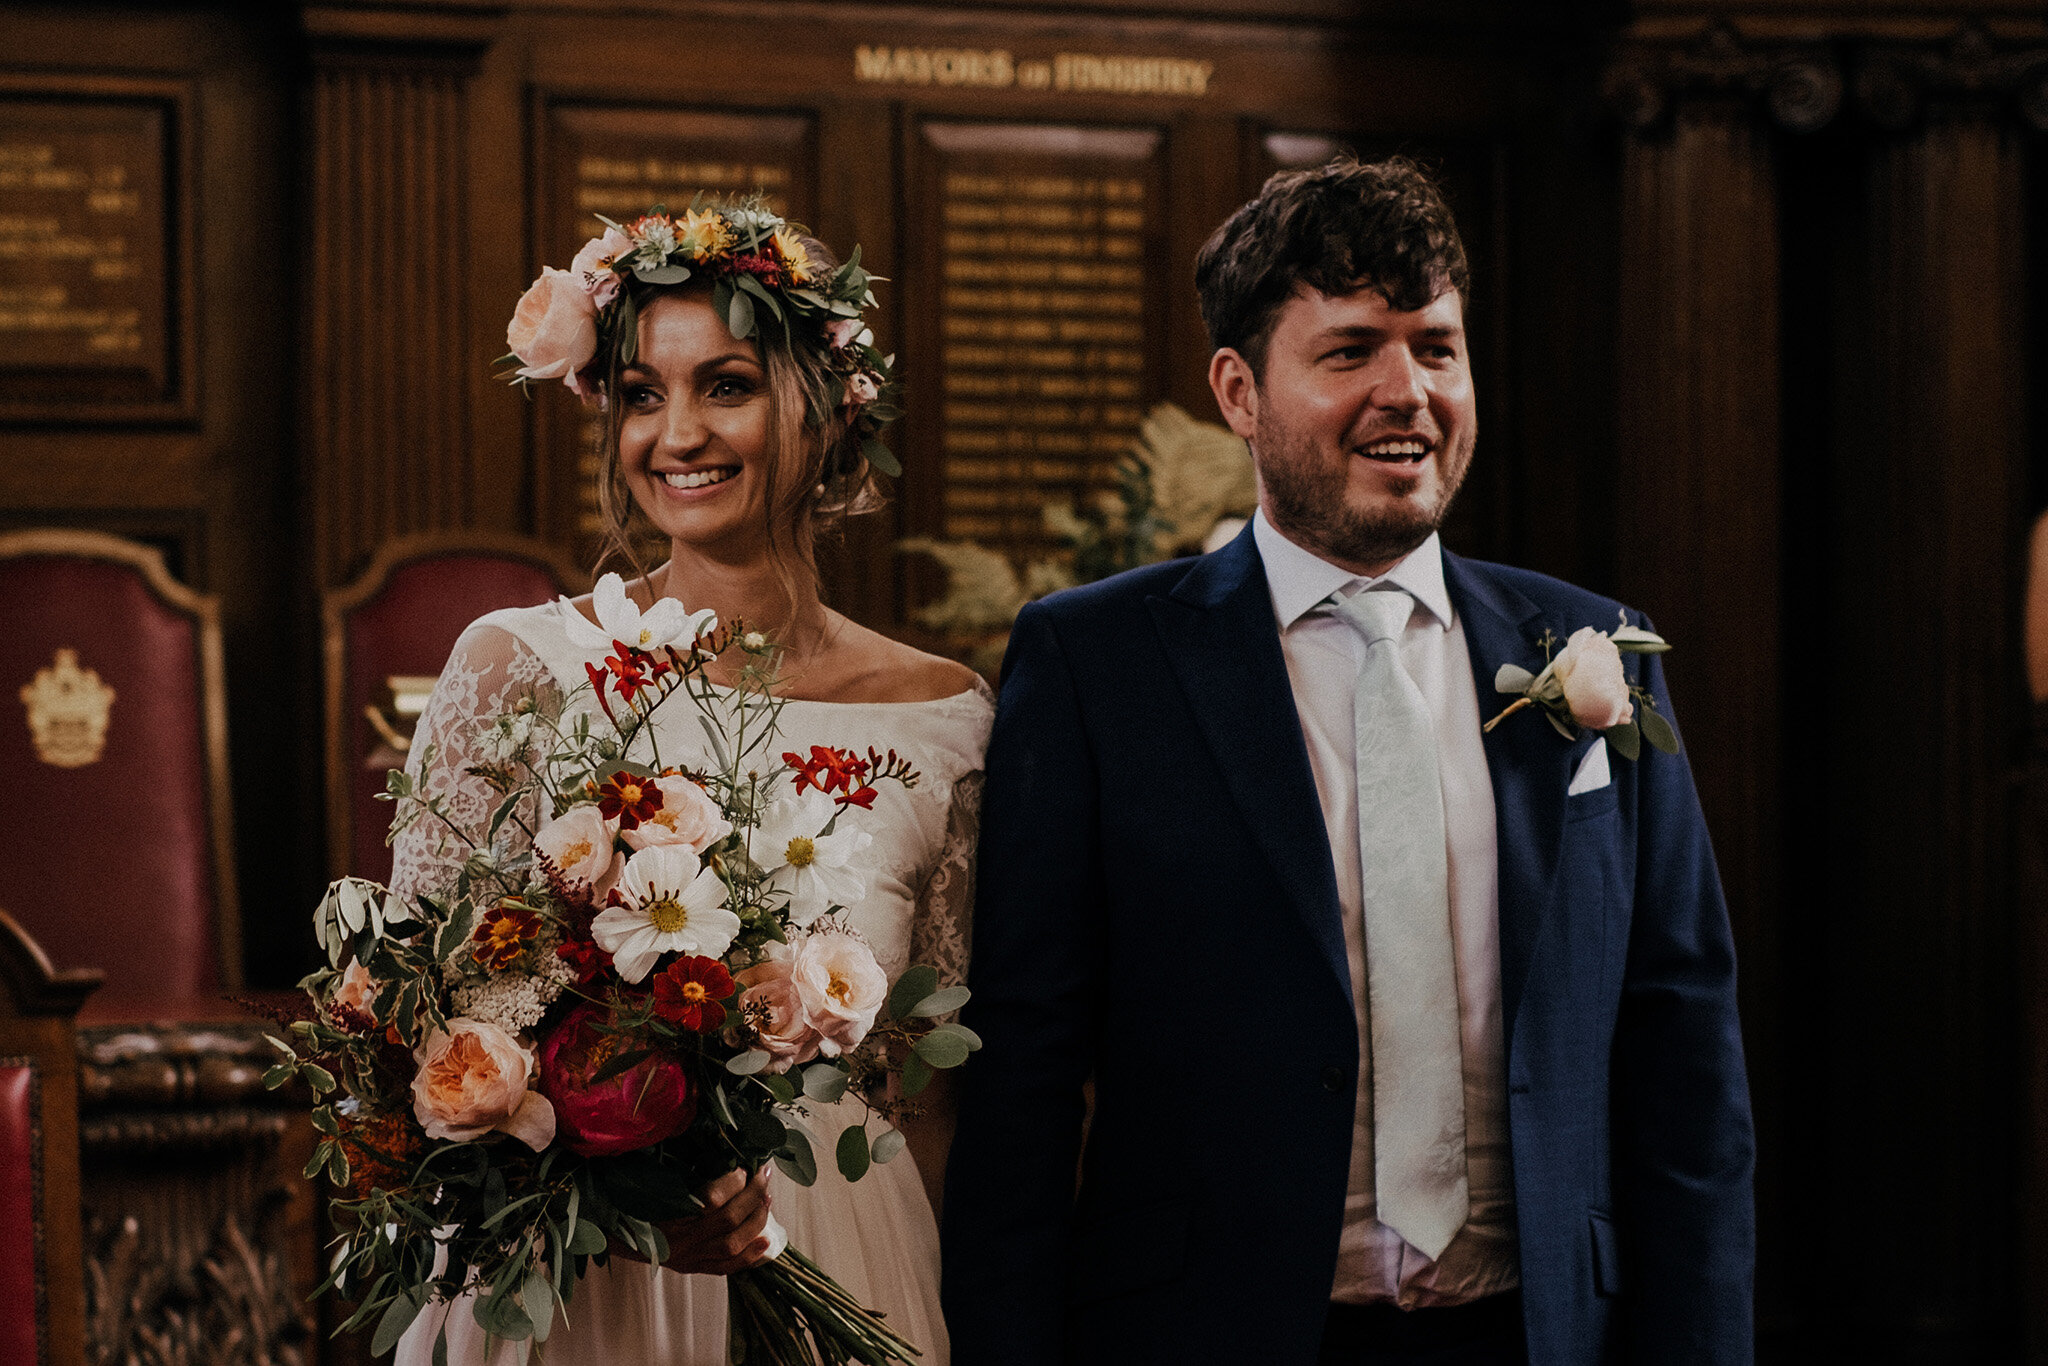 Islington-town-hall-wedding46.jpg